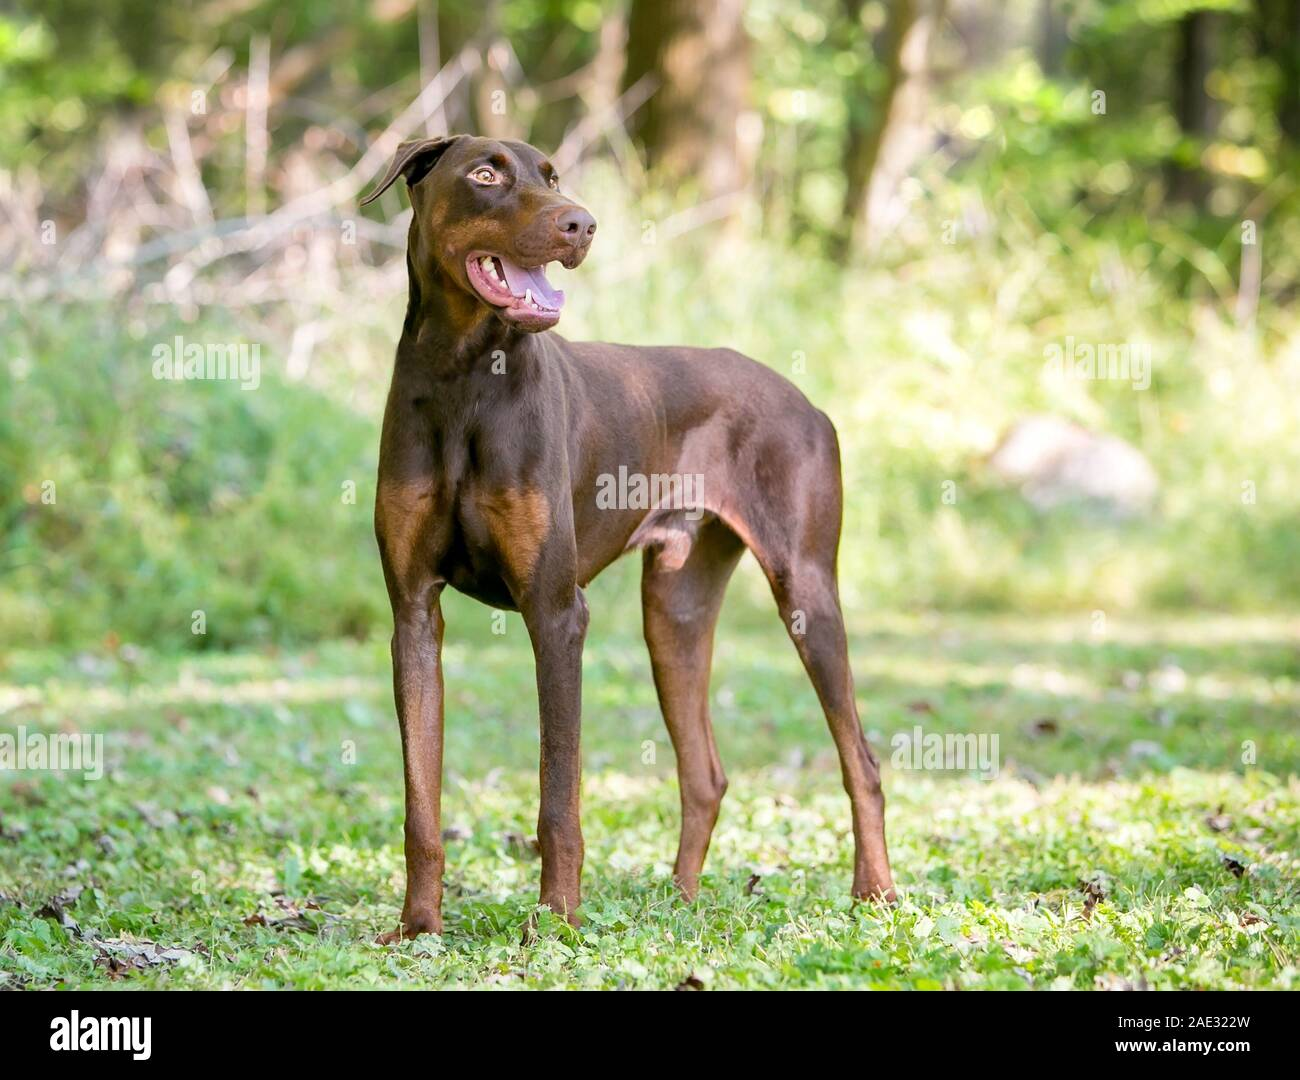 A Red Doberman Pinscher Dog With Natural Uncropped Ears Standing Outdoors Stock Photo Alamy